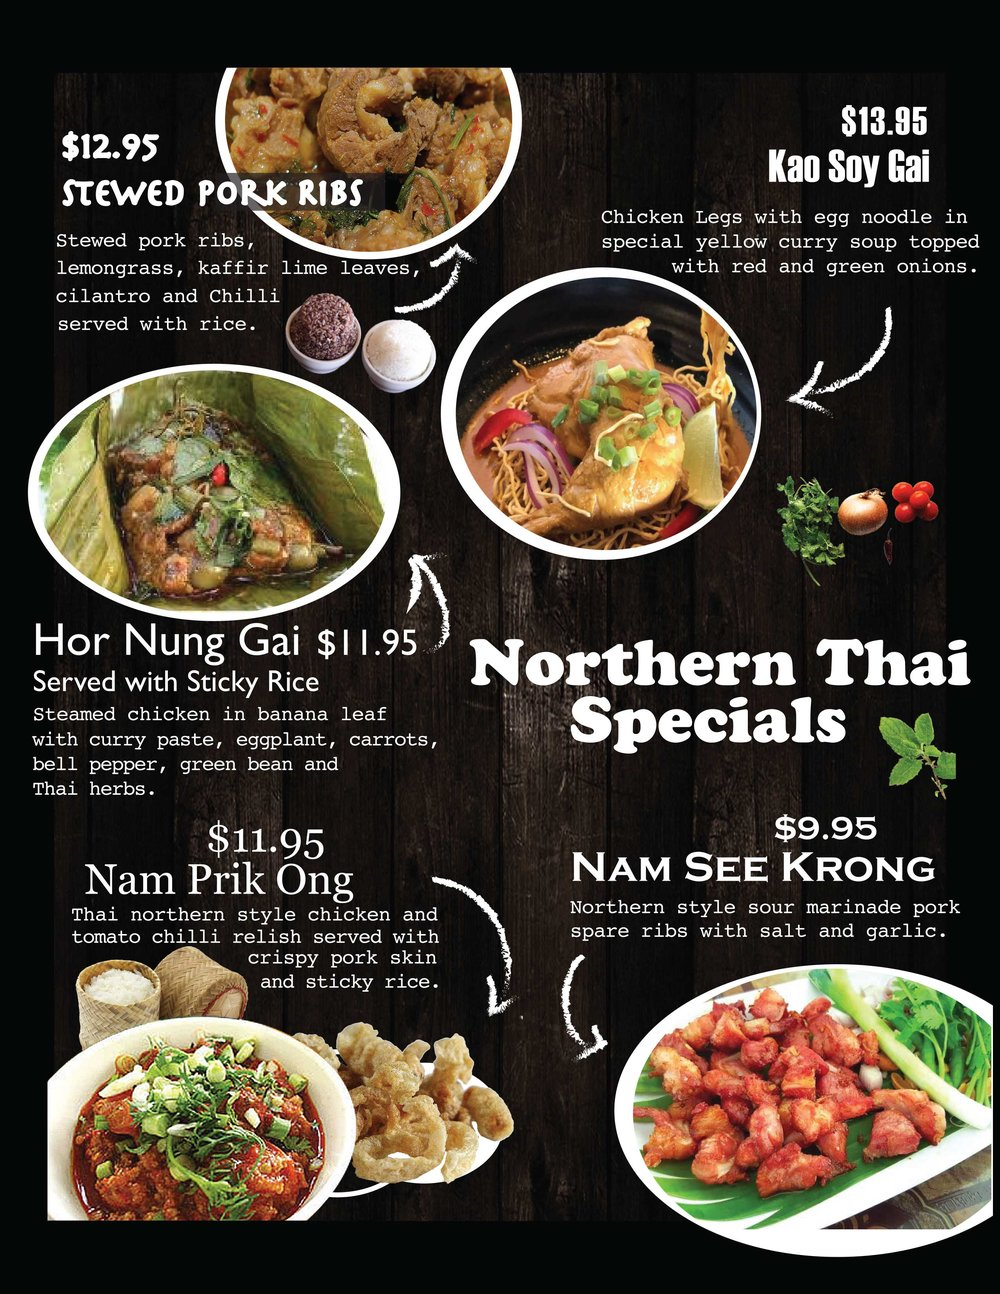 Northern Thai Specials -